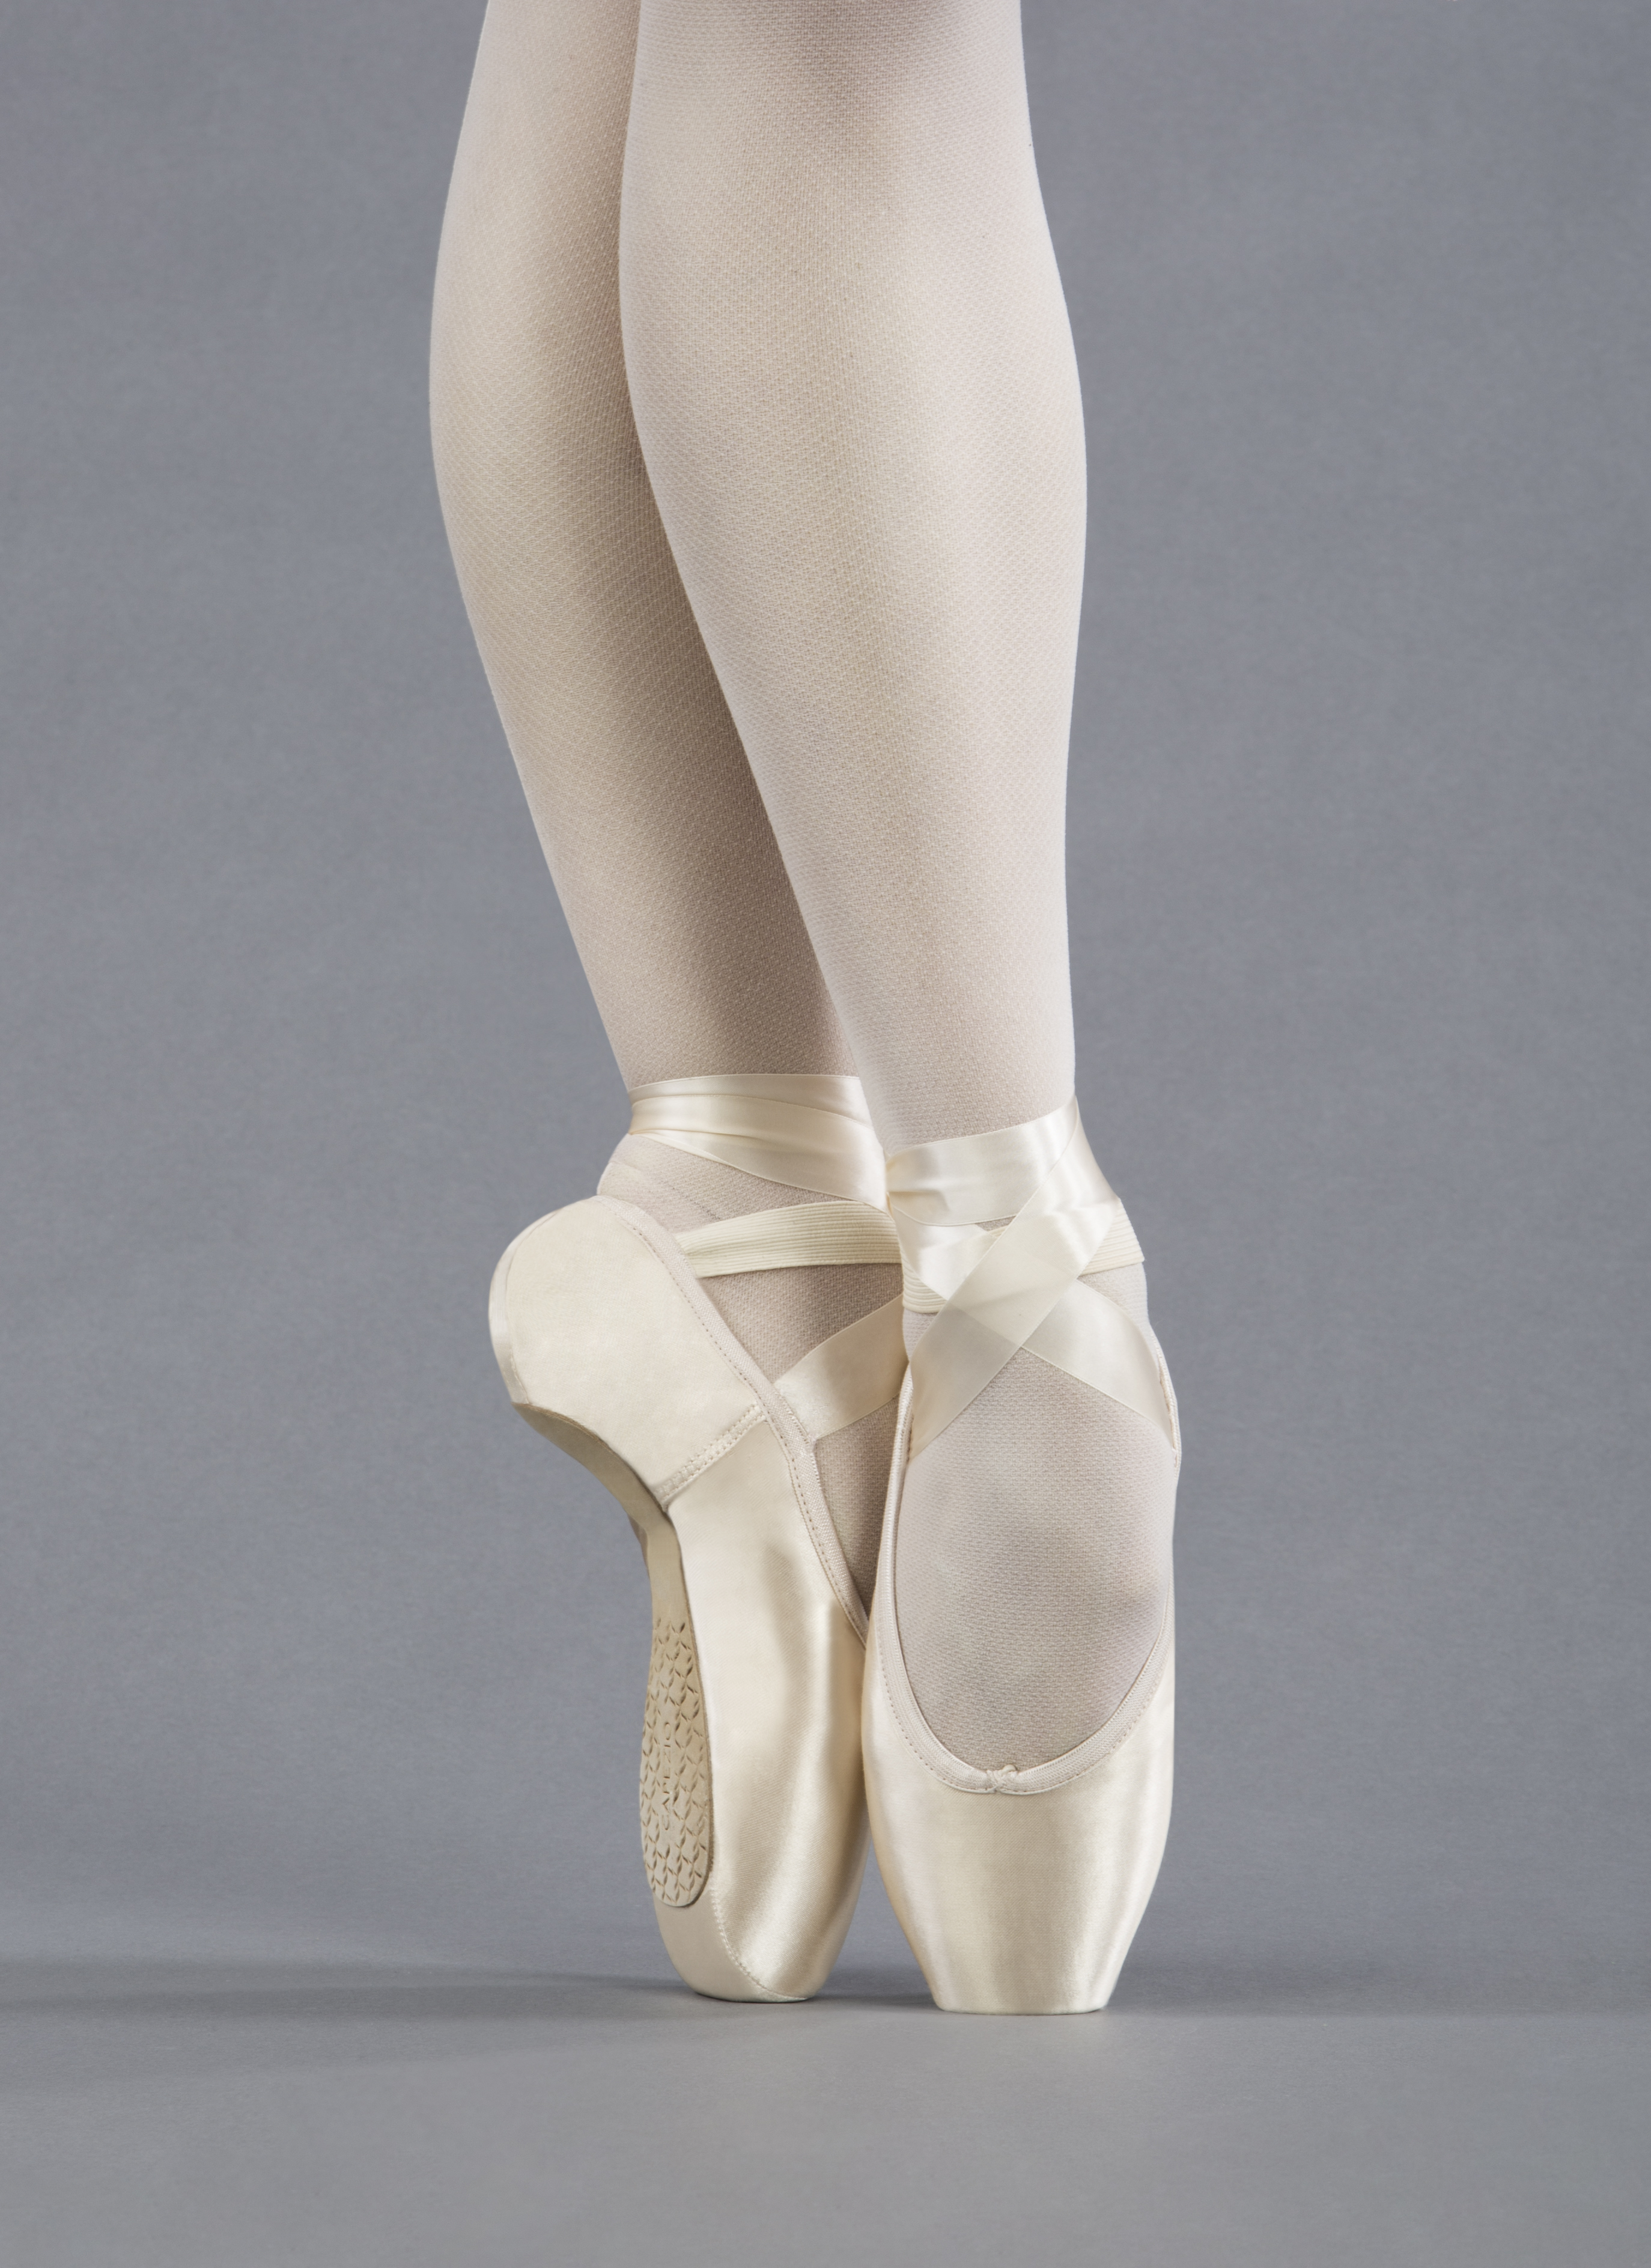 How To Clean Pointe Shoes Style Guru Fashion Glitz